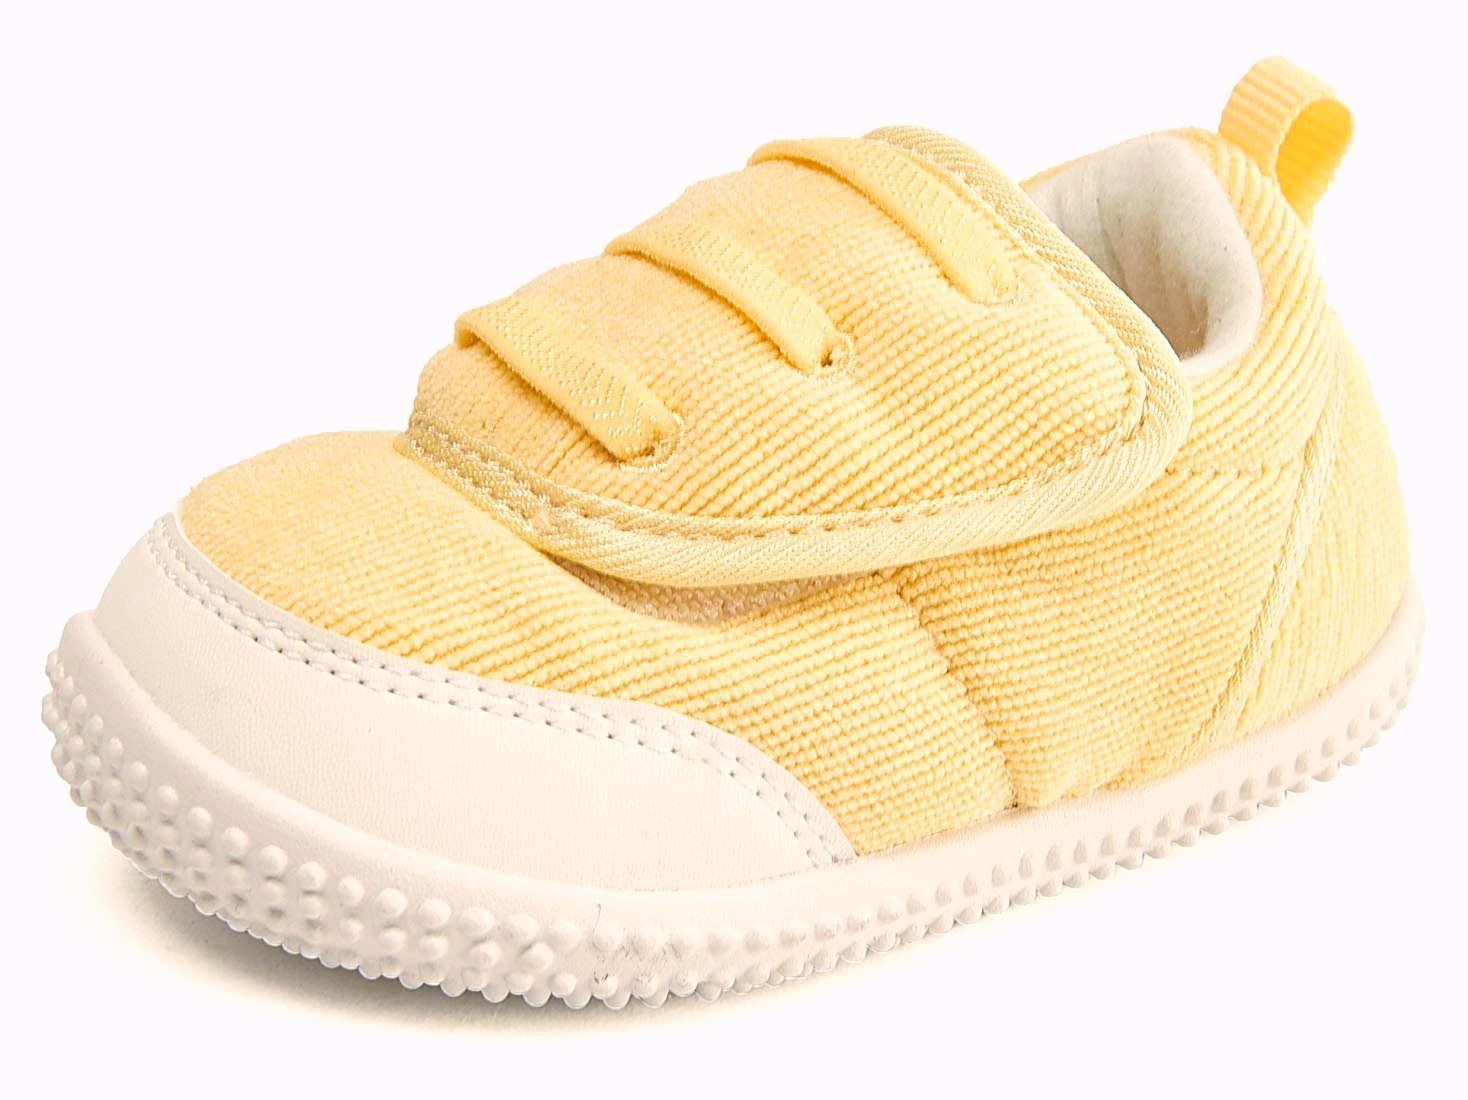 best shoes toddlers wide feet